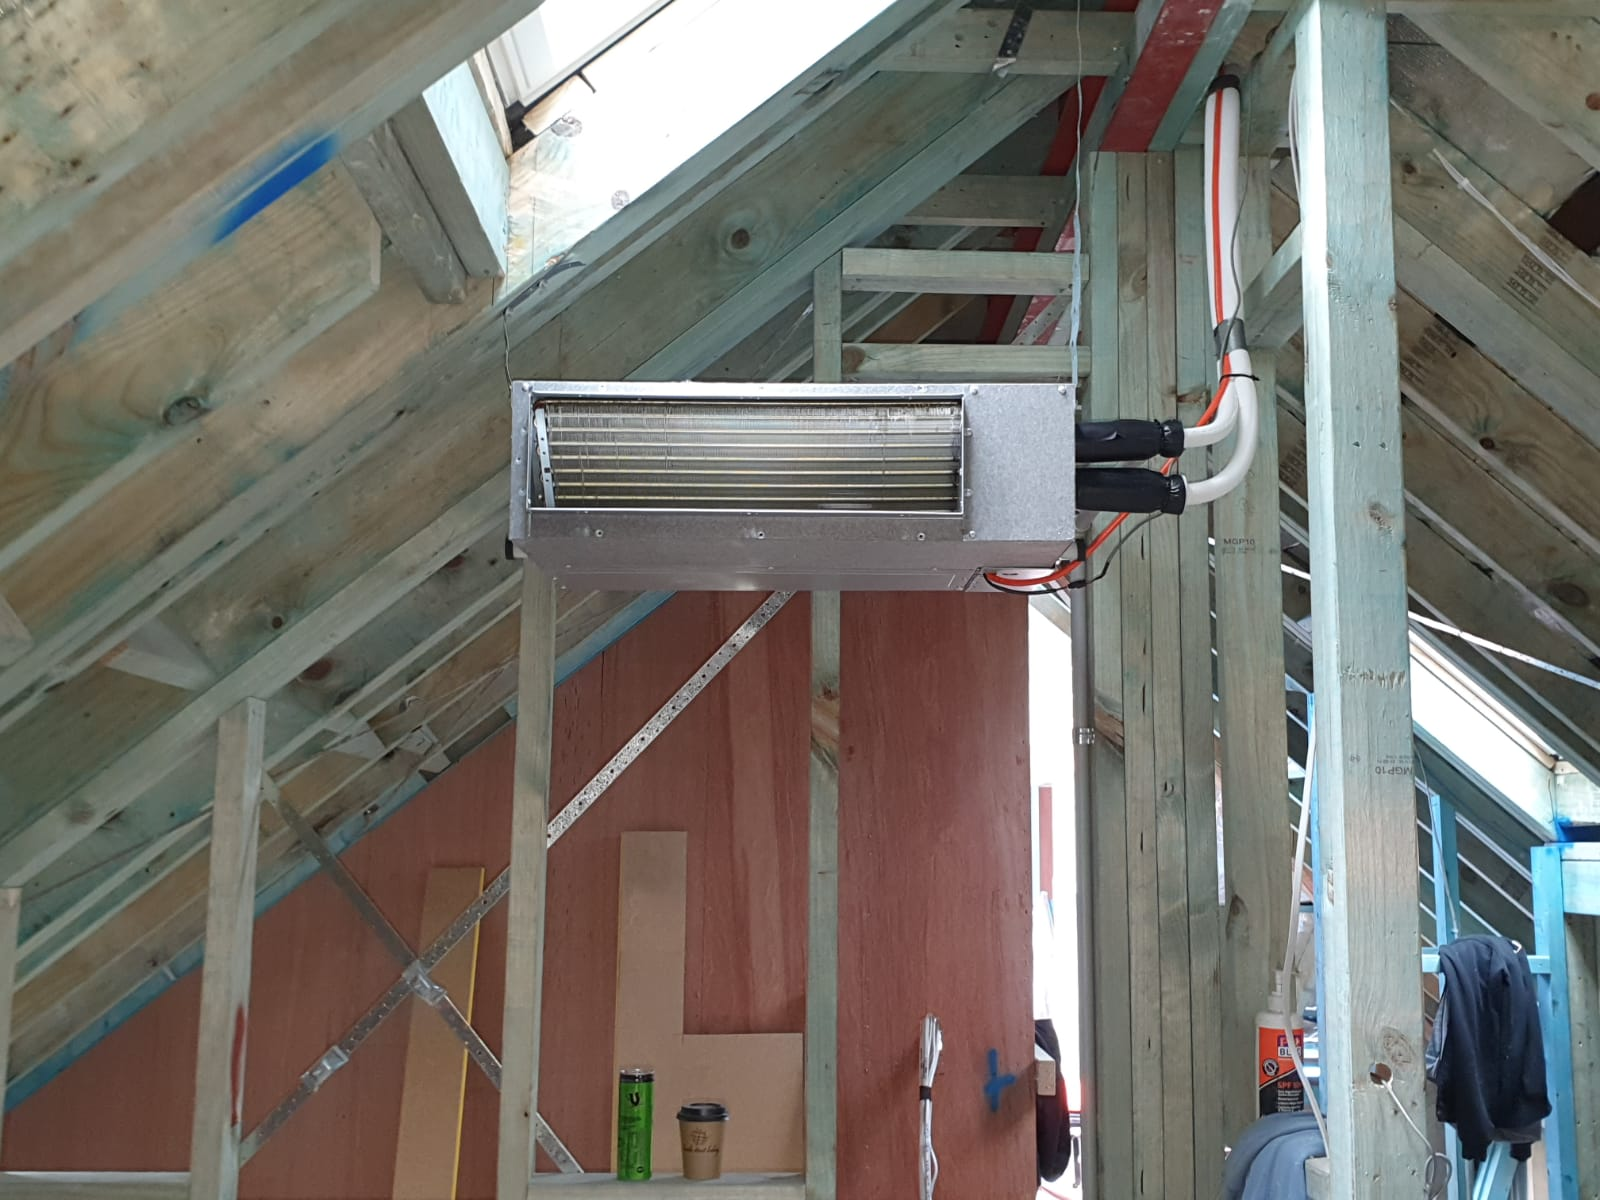 Installation of an air conditioning unit in a roof